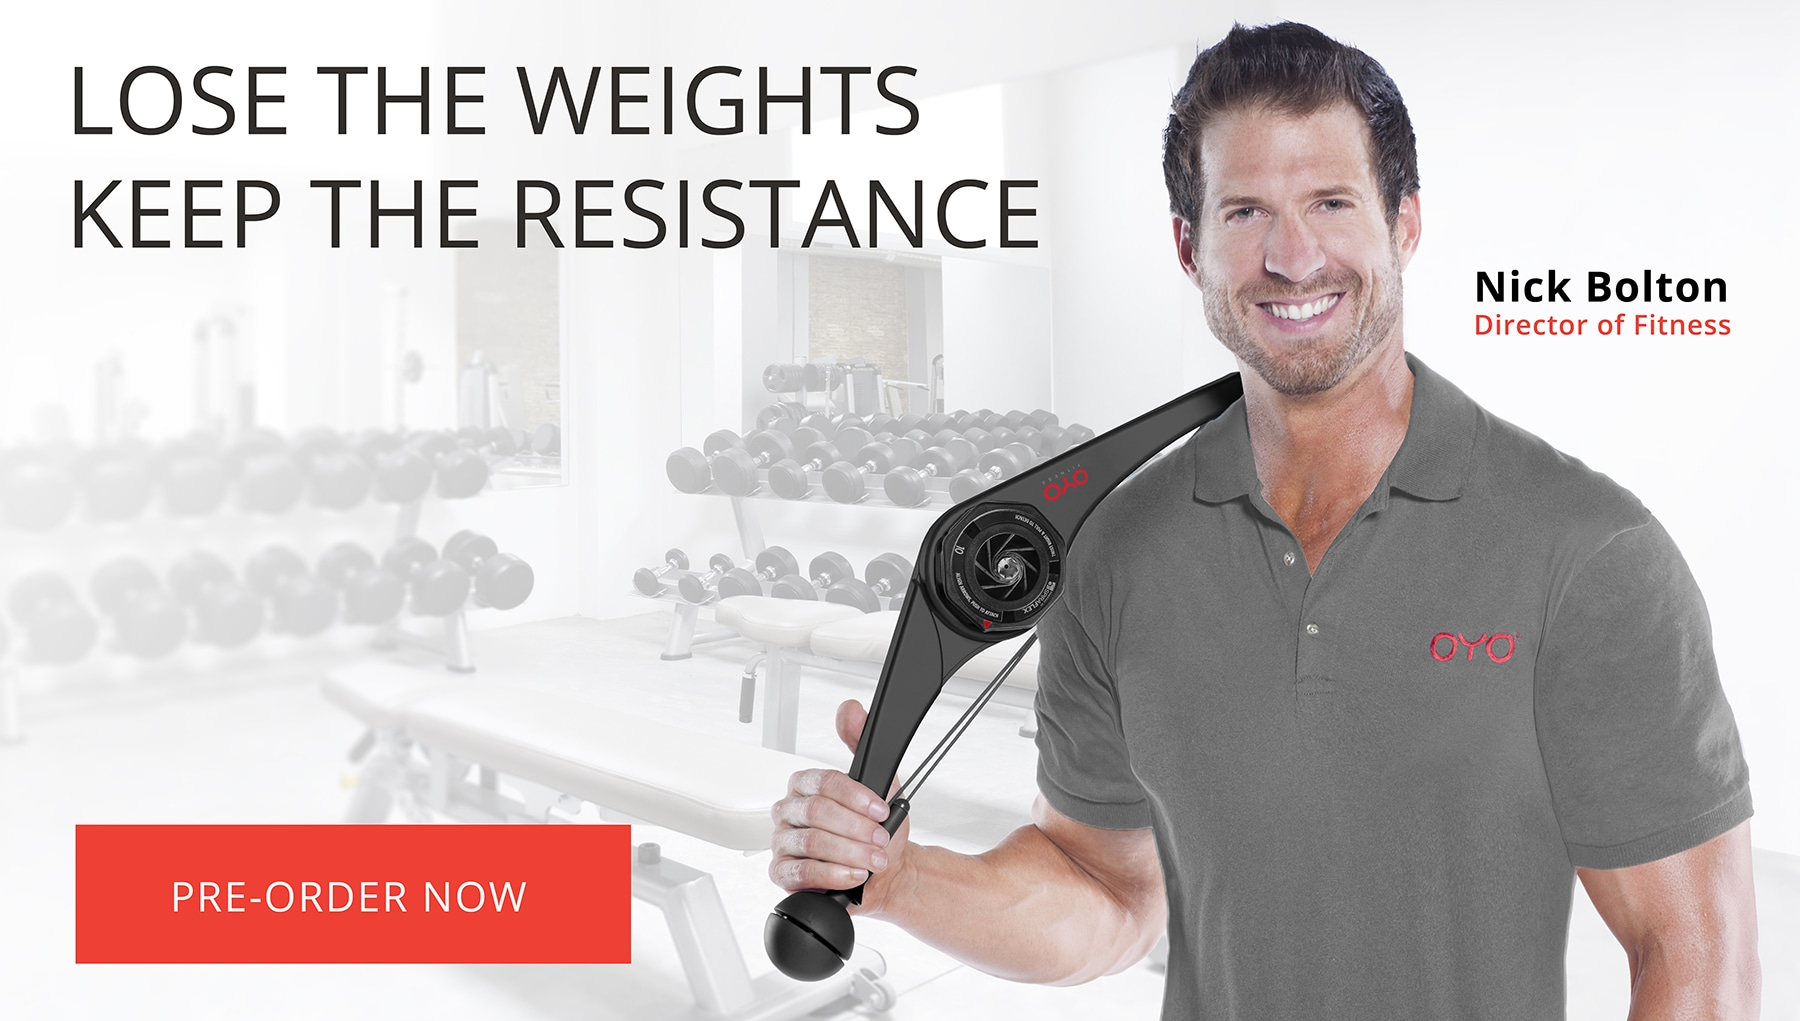 Lose The Weights, Keep the Resistance